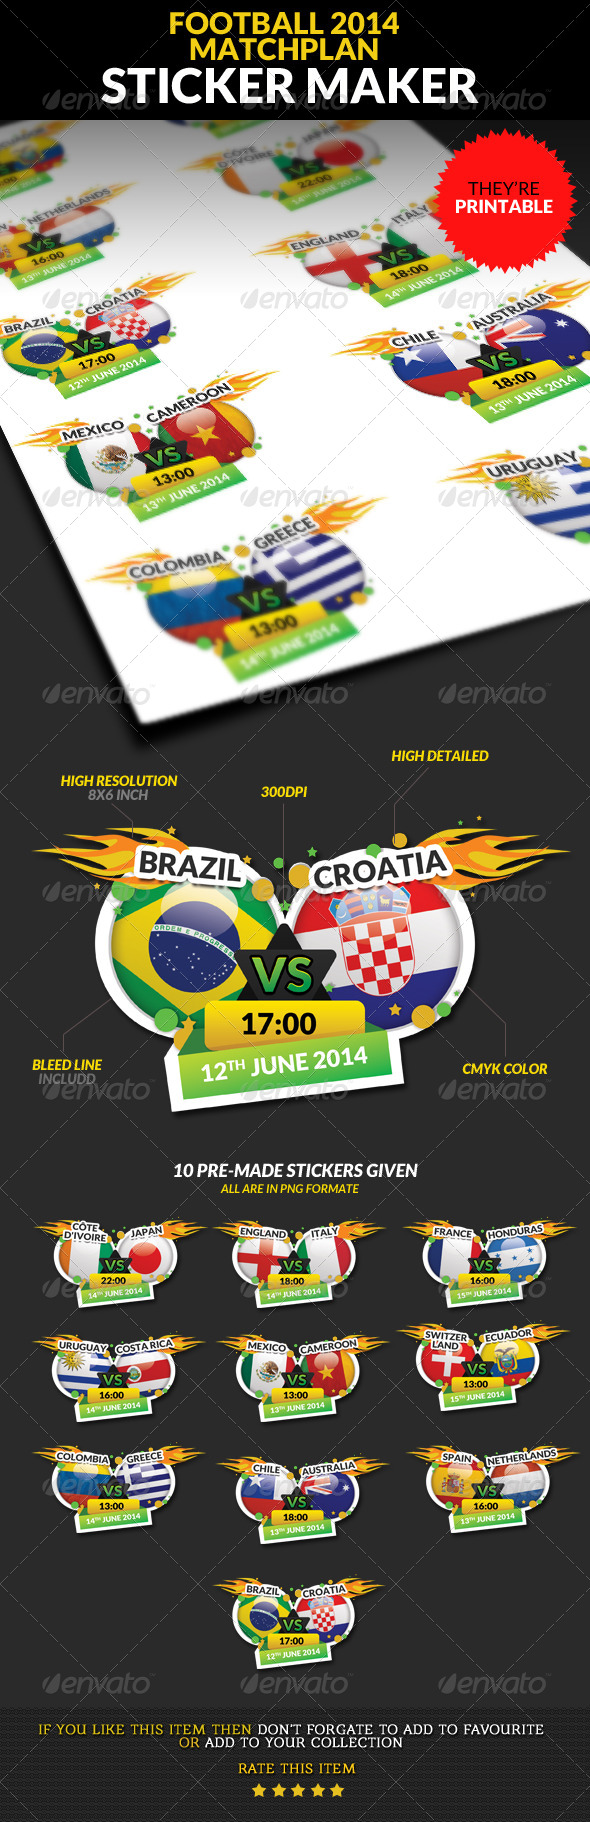 GraphicRiver Football Championship 2014 Matchplan Sticker Maker 7847387